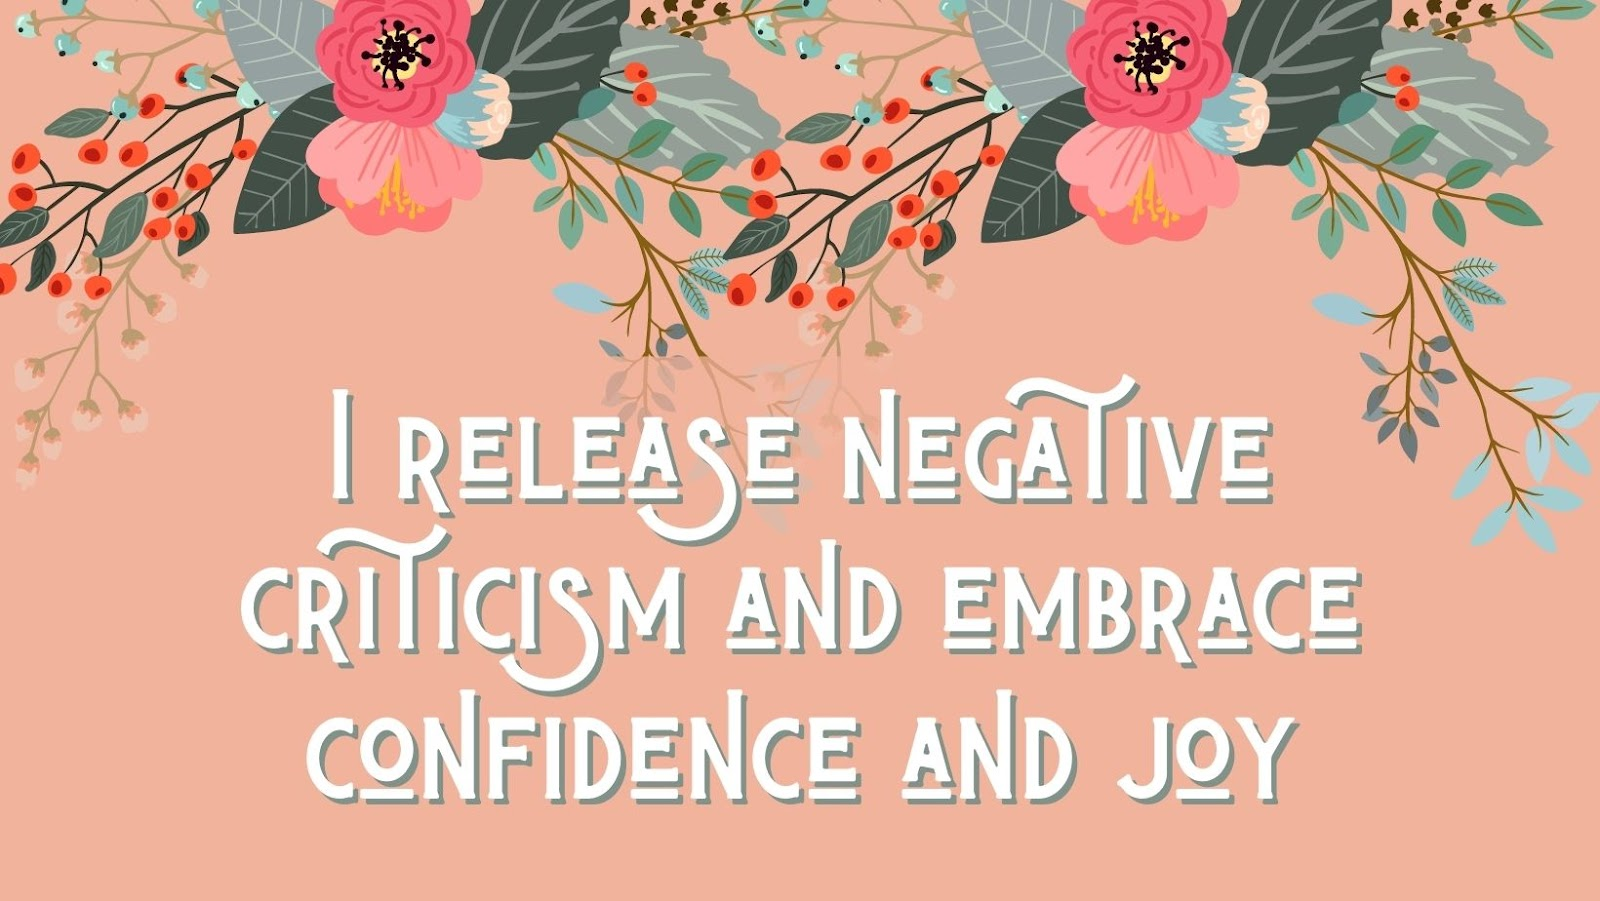 confidence affirmation: I release negative criticism and embrace confidence and joy